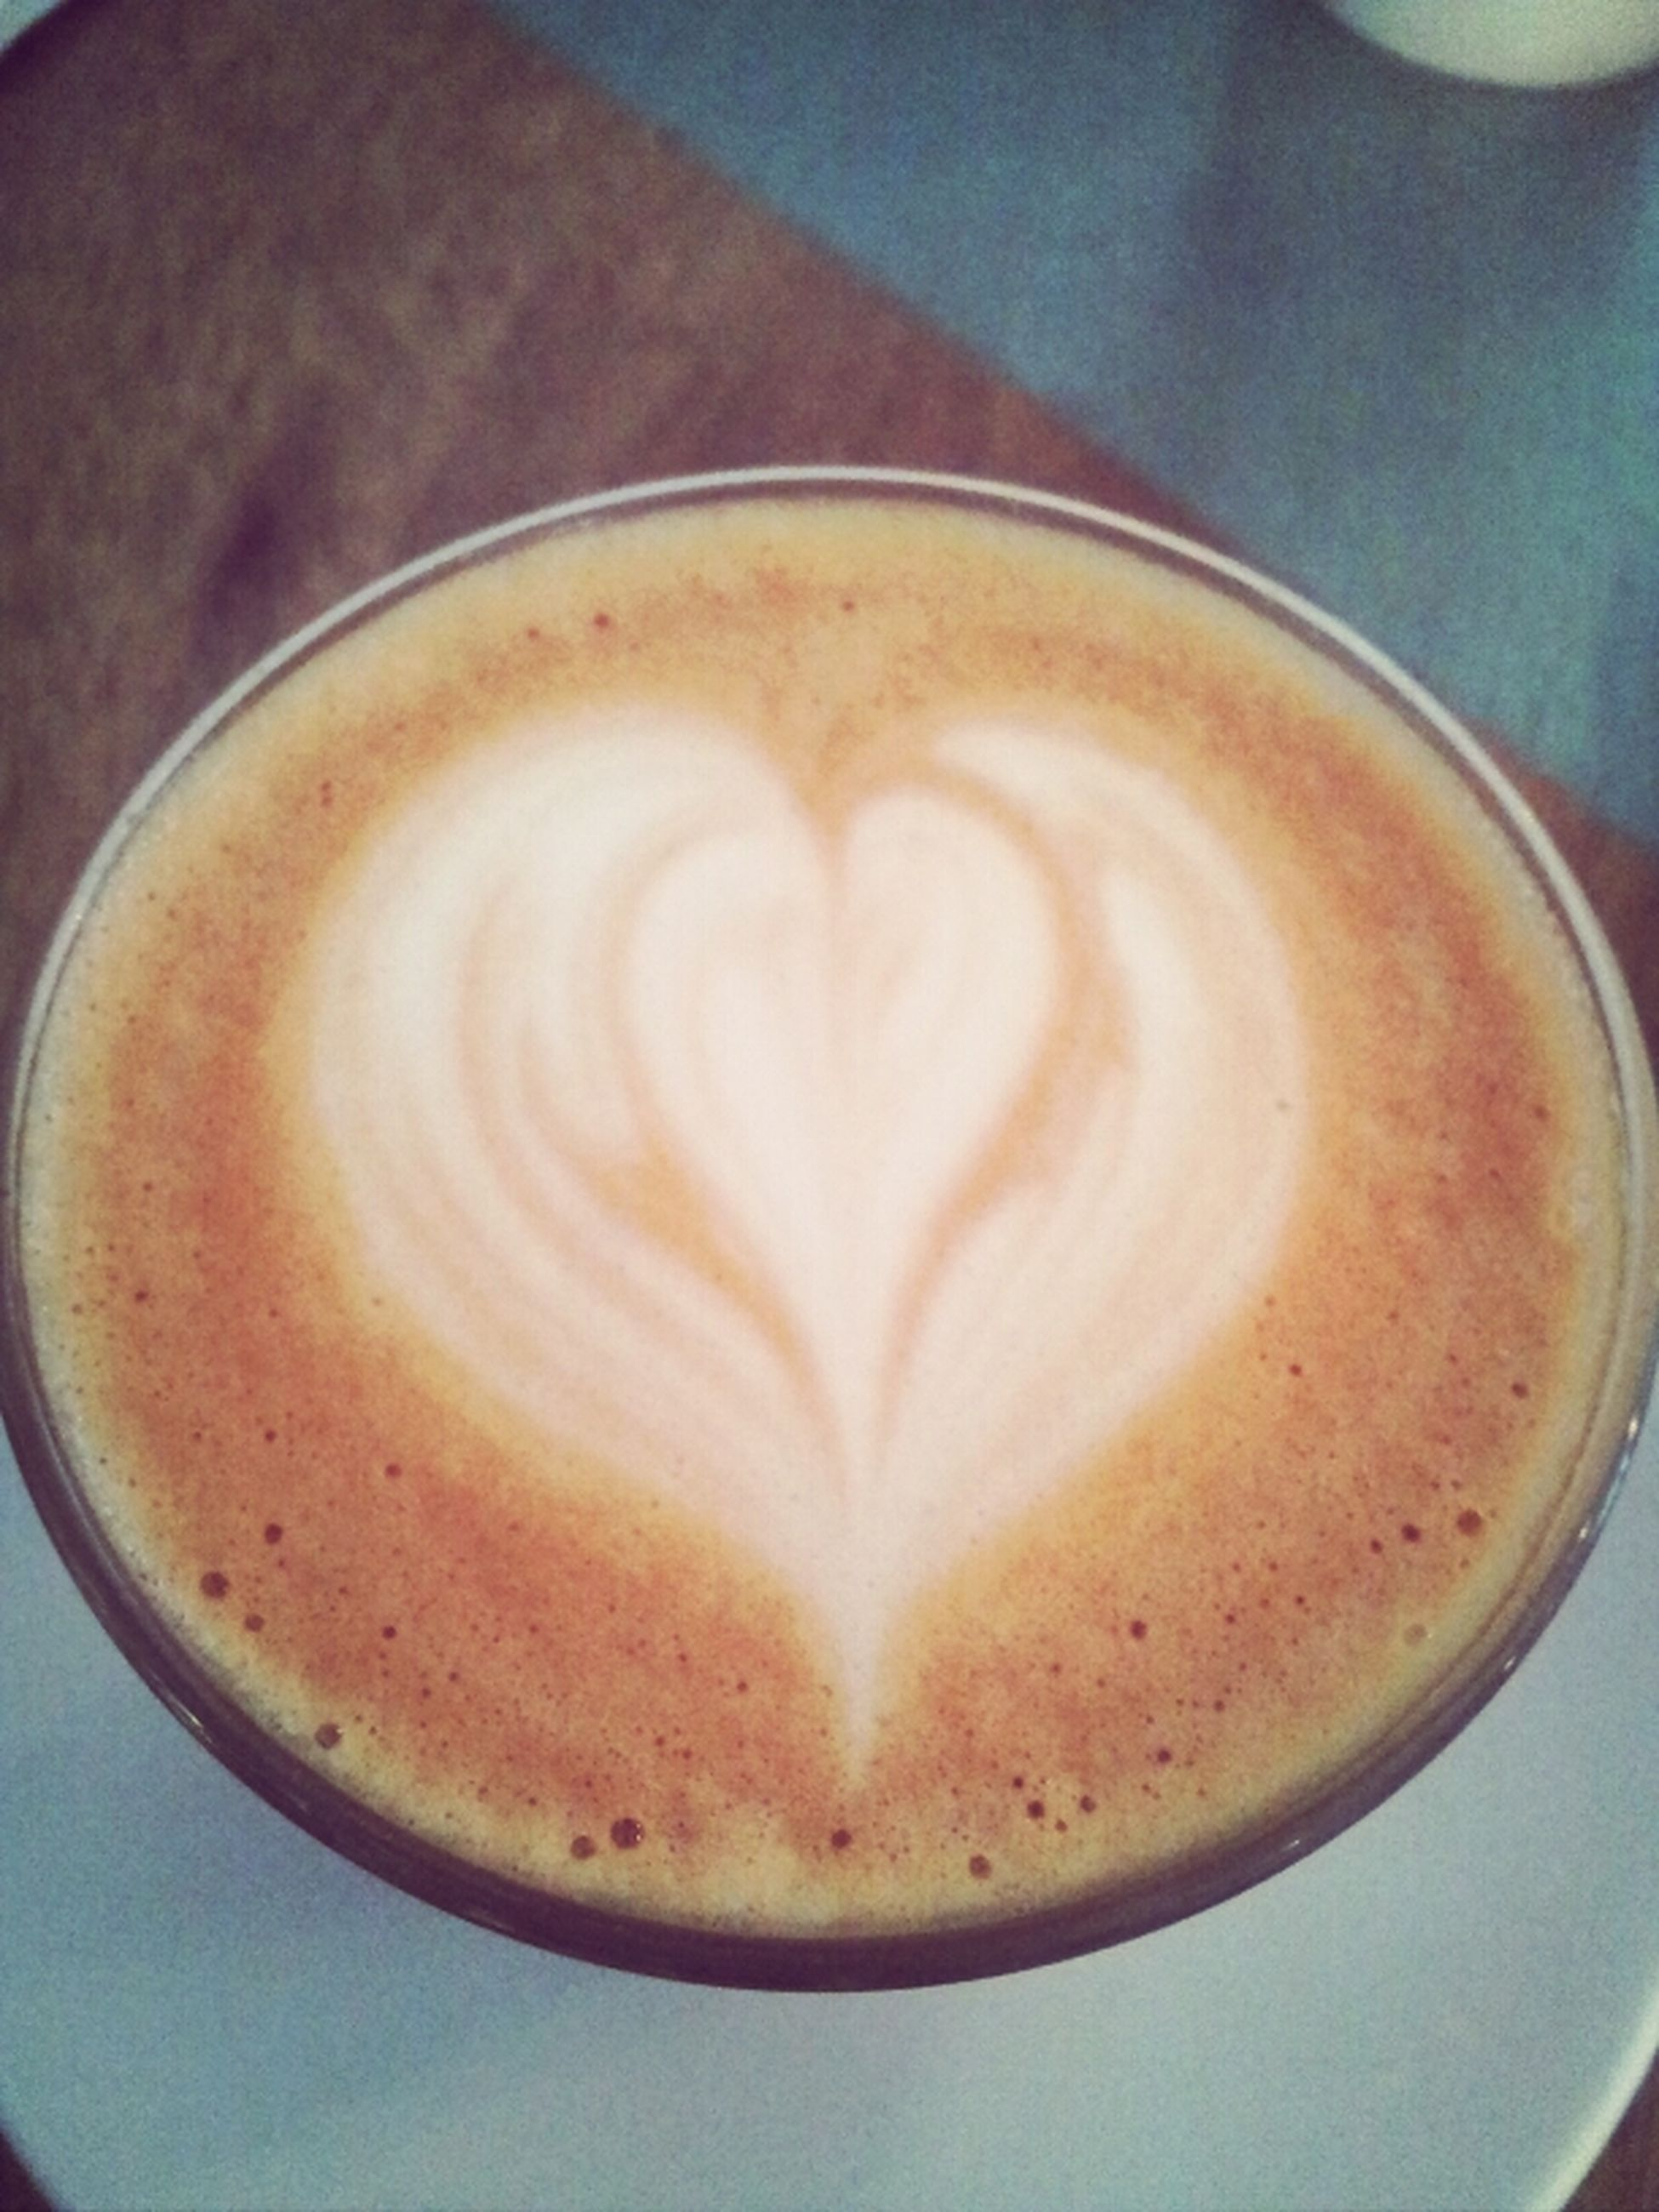 coffee cup, drink, refreshment, food and drink, froth art, cappuccino, frothy drink, coffee - drink, saucer, indoors, coffee, freshness, table, close-up, latte, still life, cup, high angle view, art, heart shape